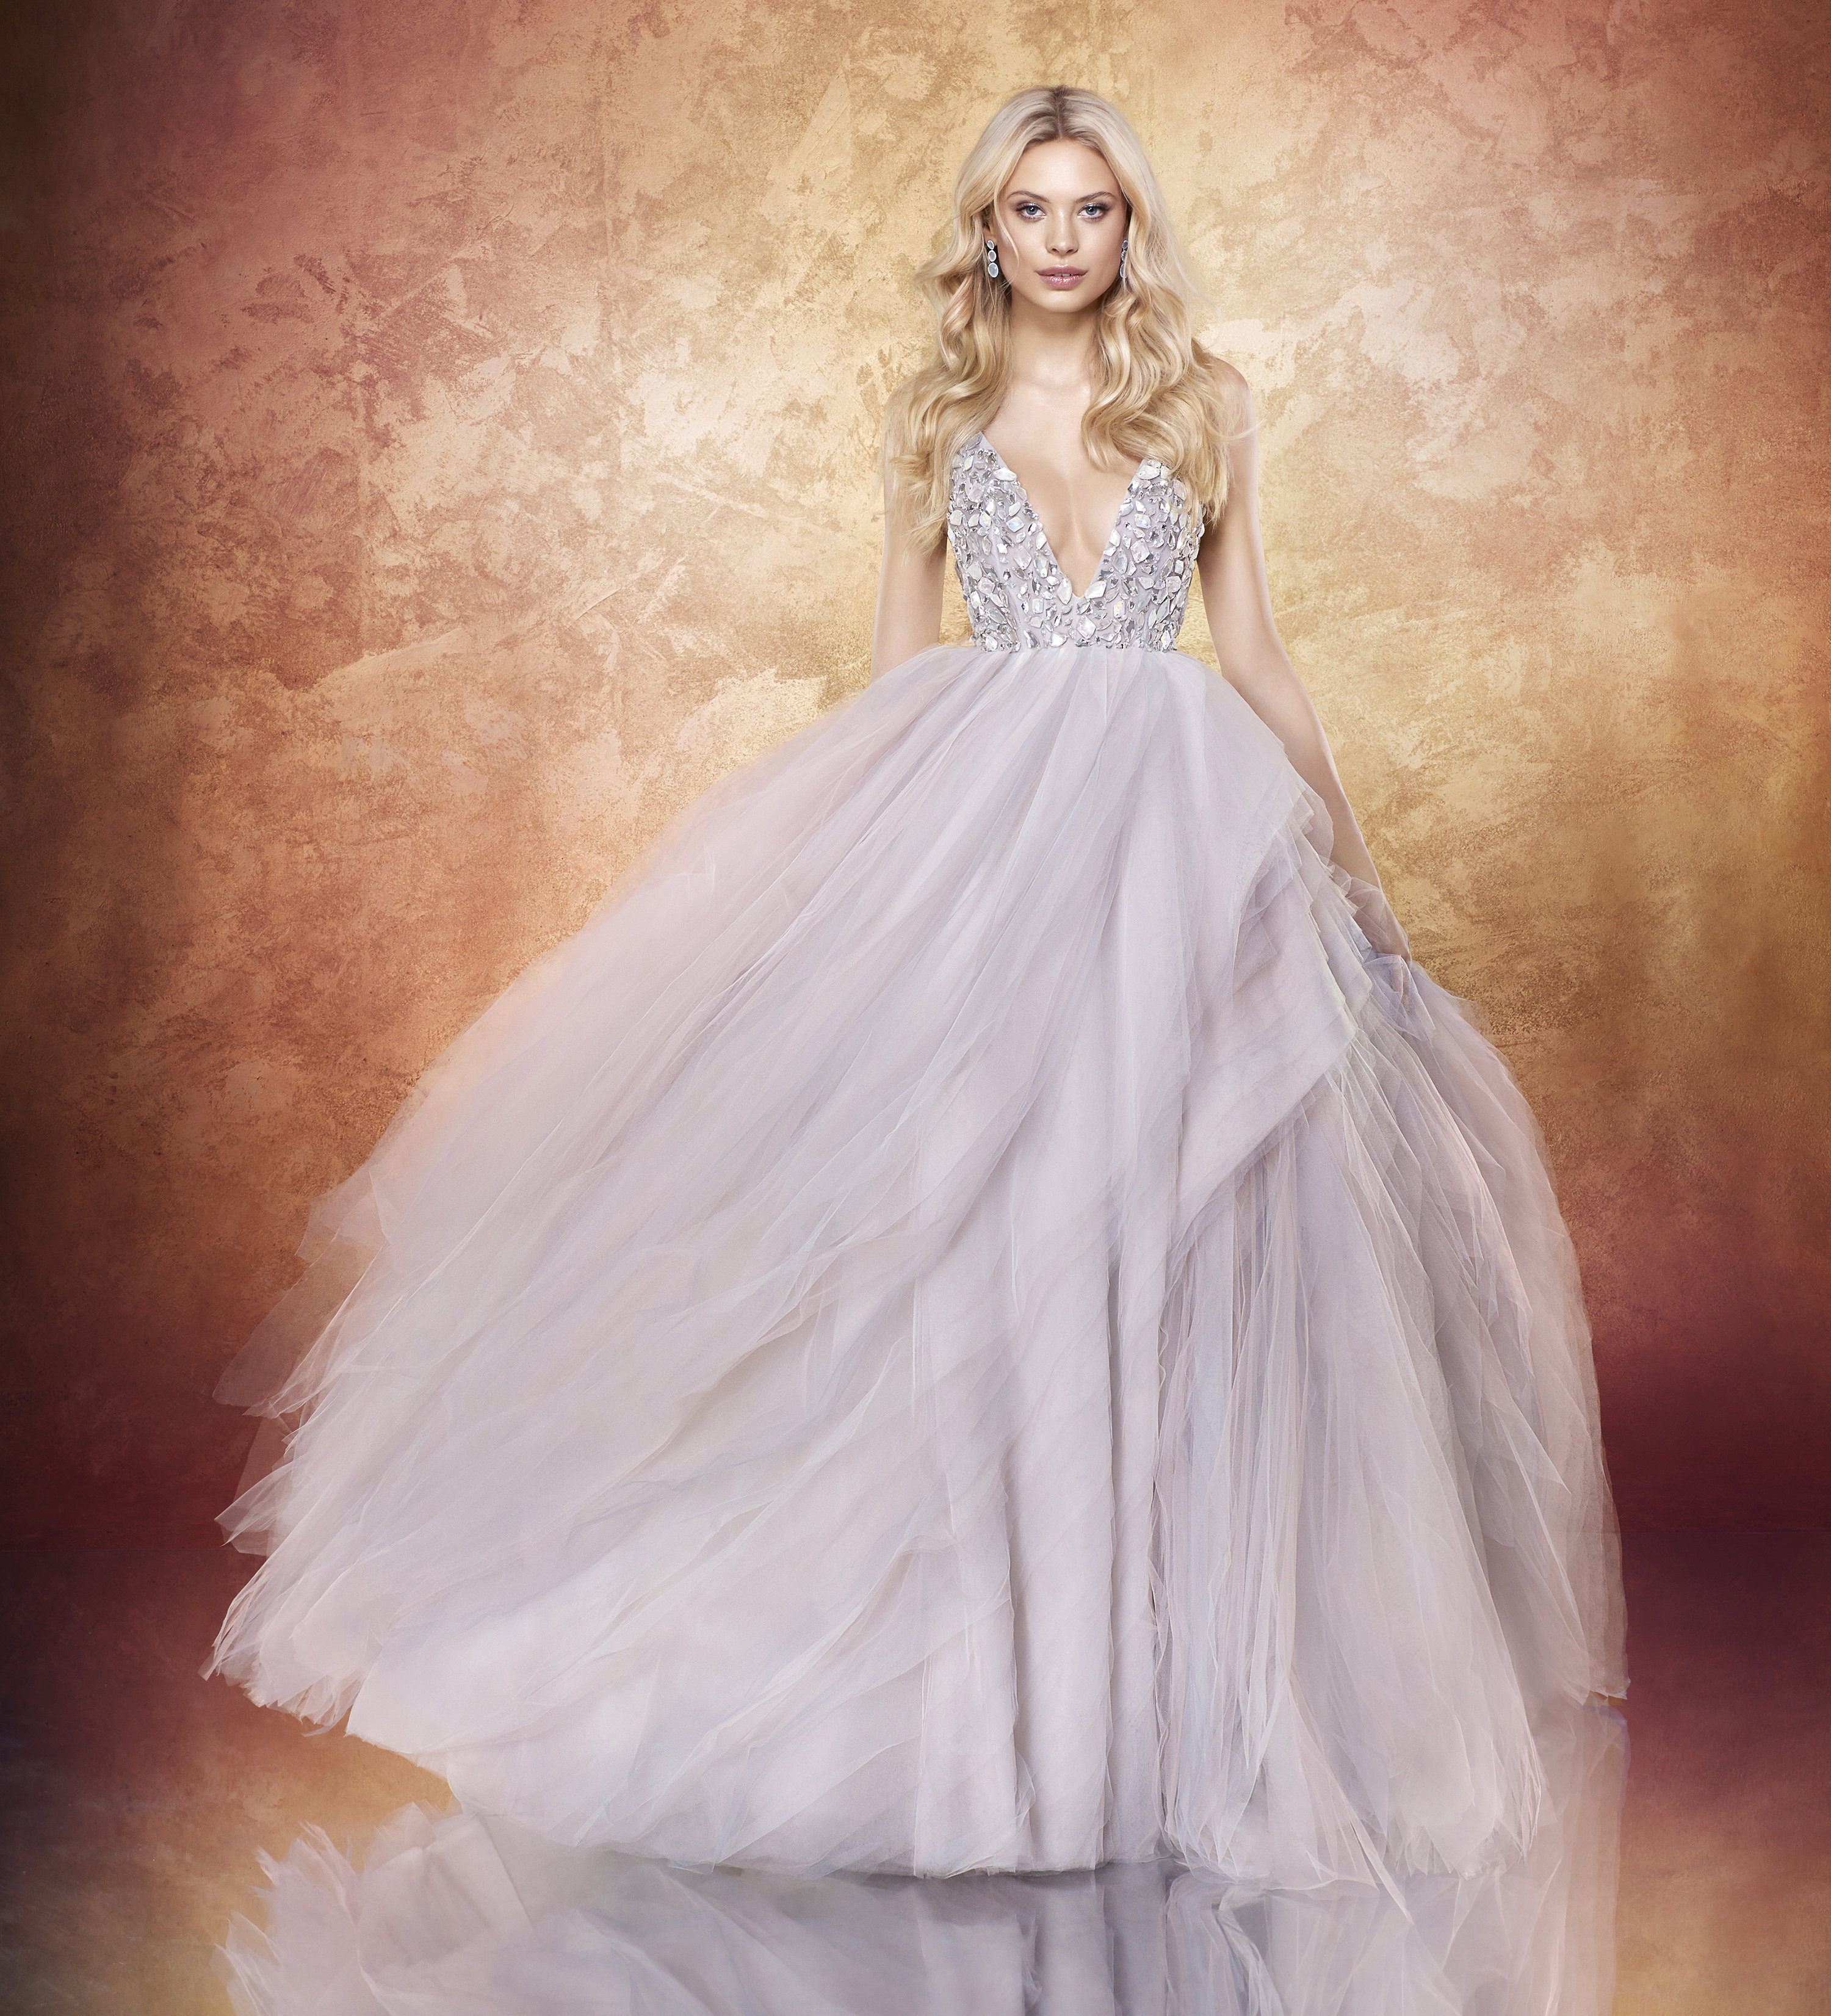 Bridal Gowns And Wedding Dresses By Jlm Couture Style 6712 Jem